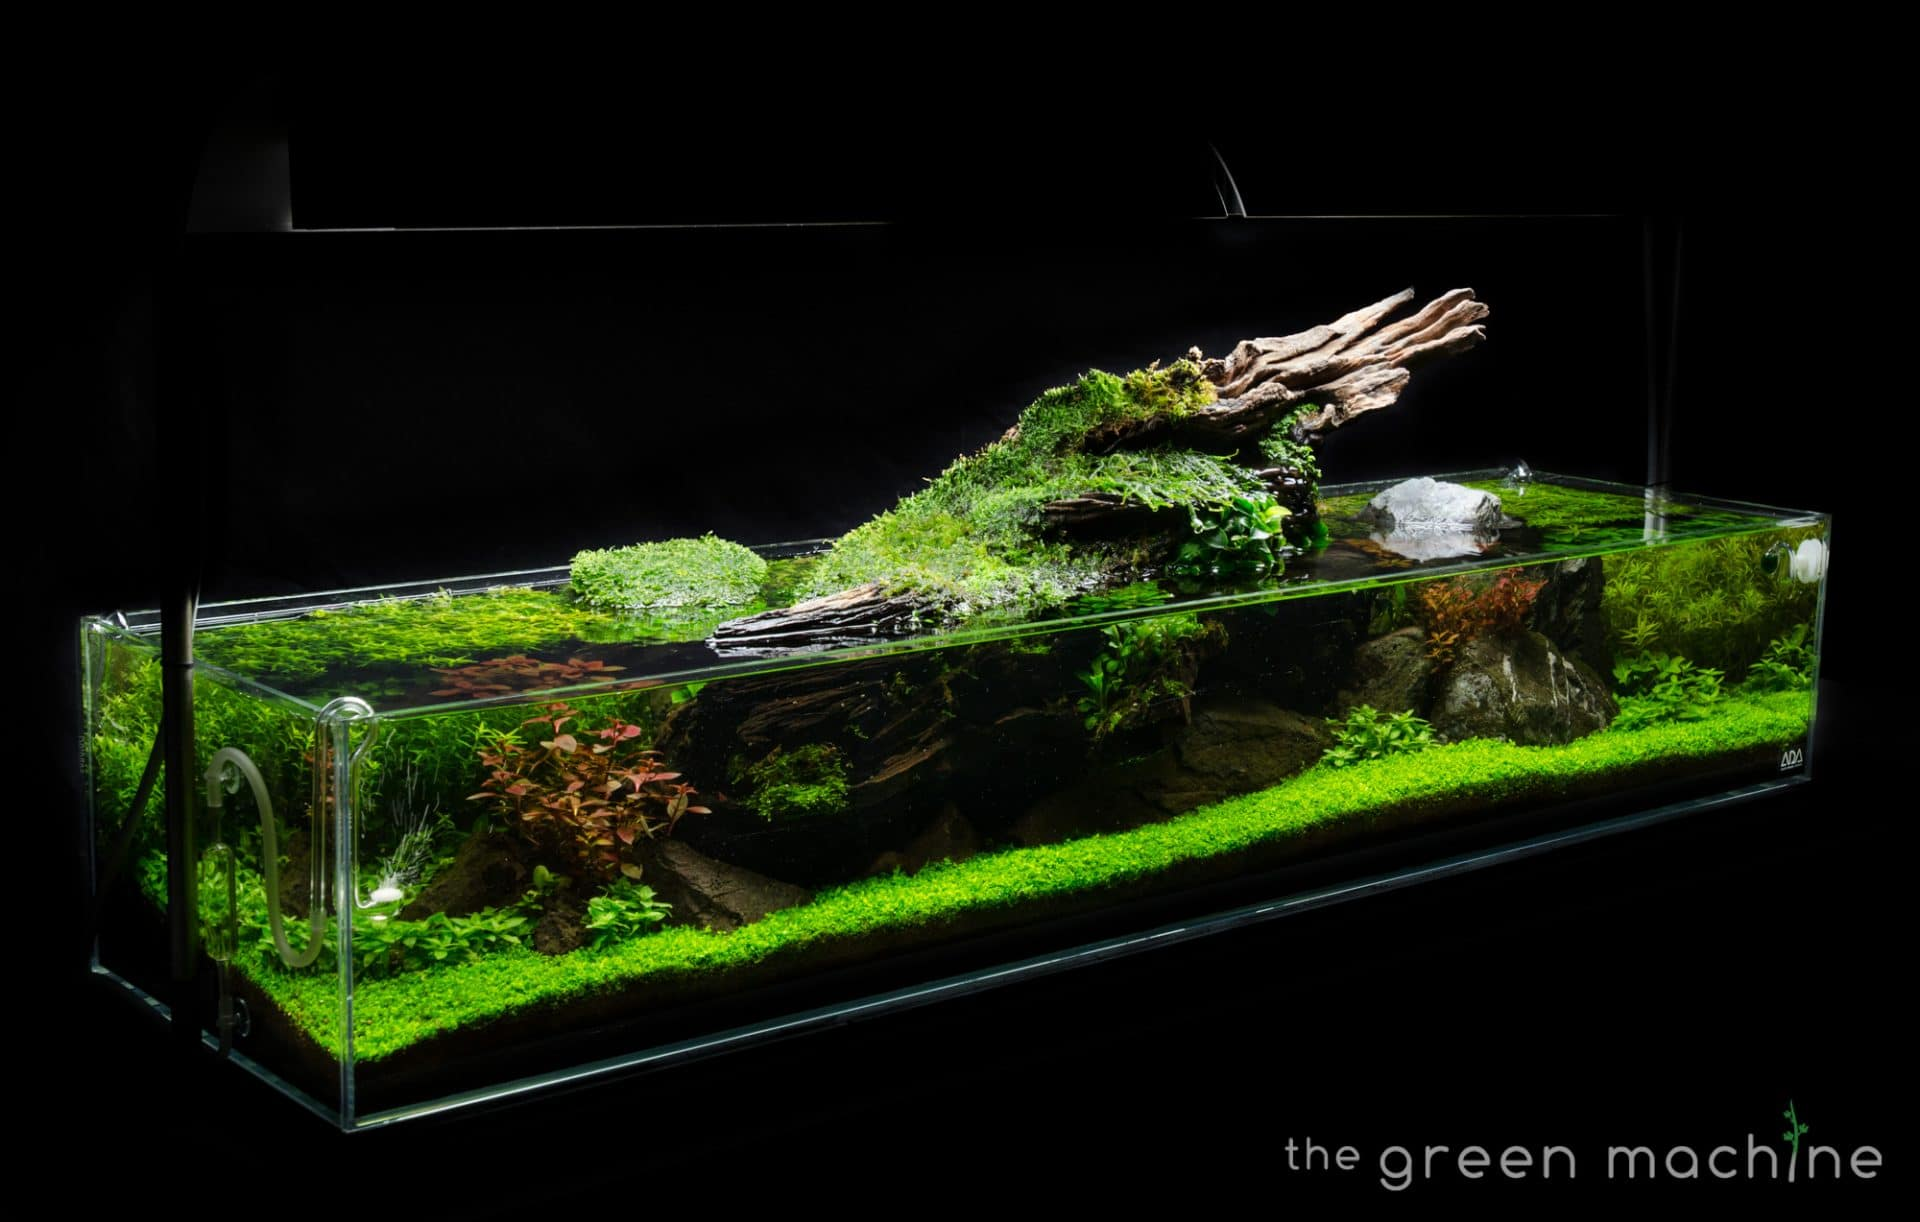 Images Aquascape Art The Green Machine